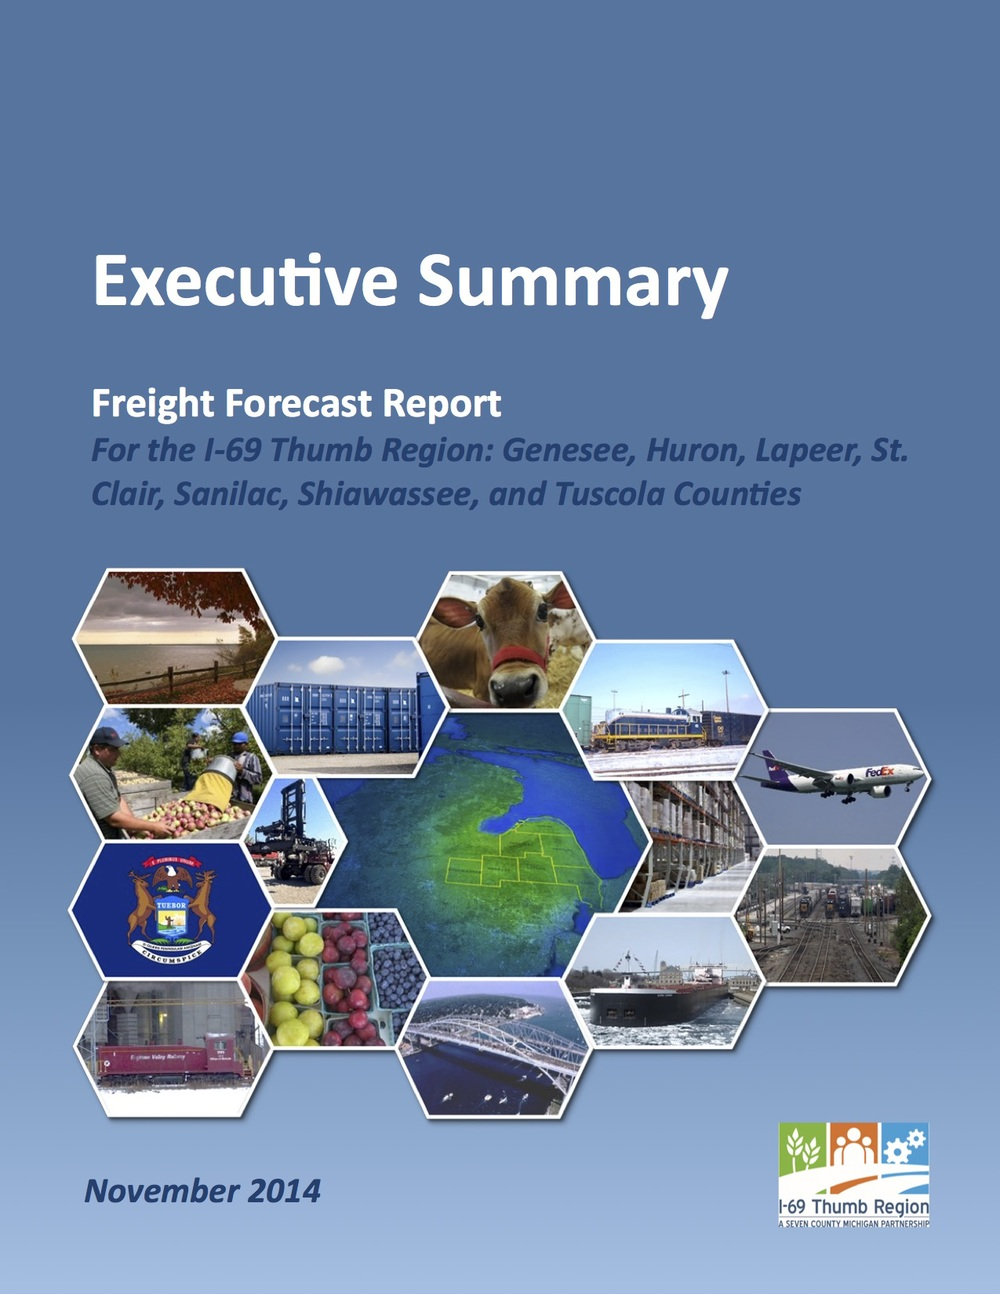 1-69 Thumb Freight Executive Summary